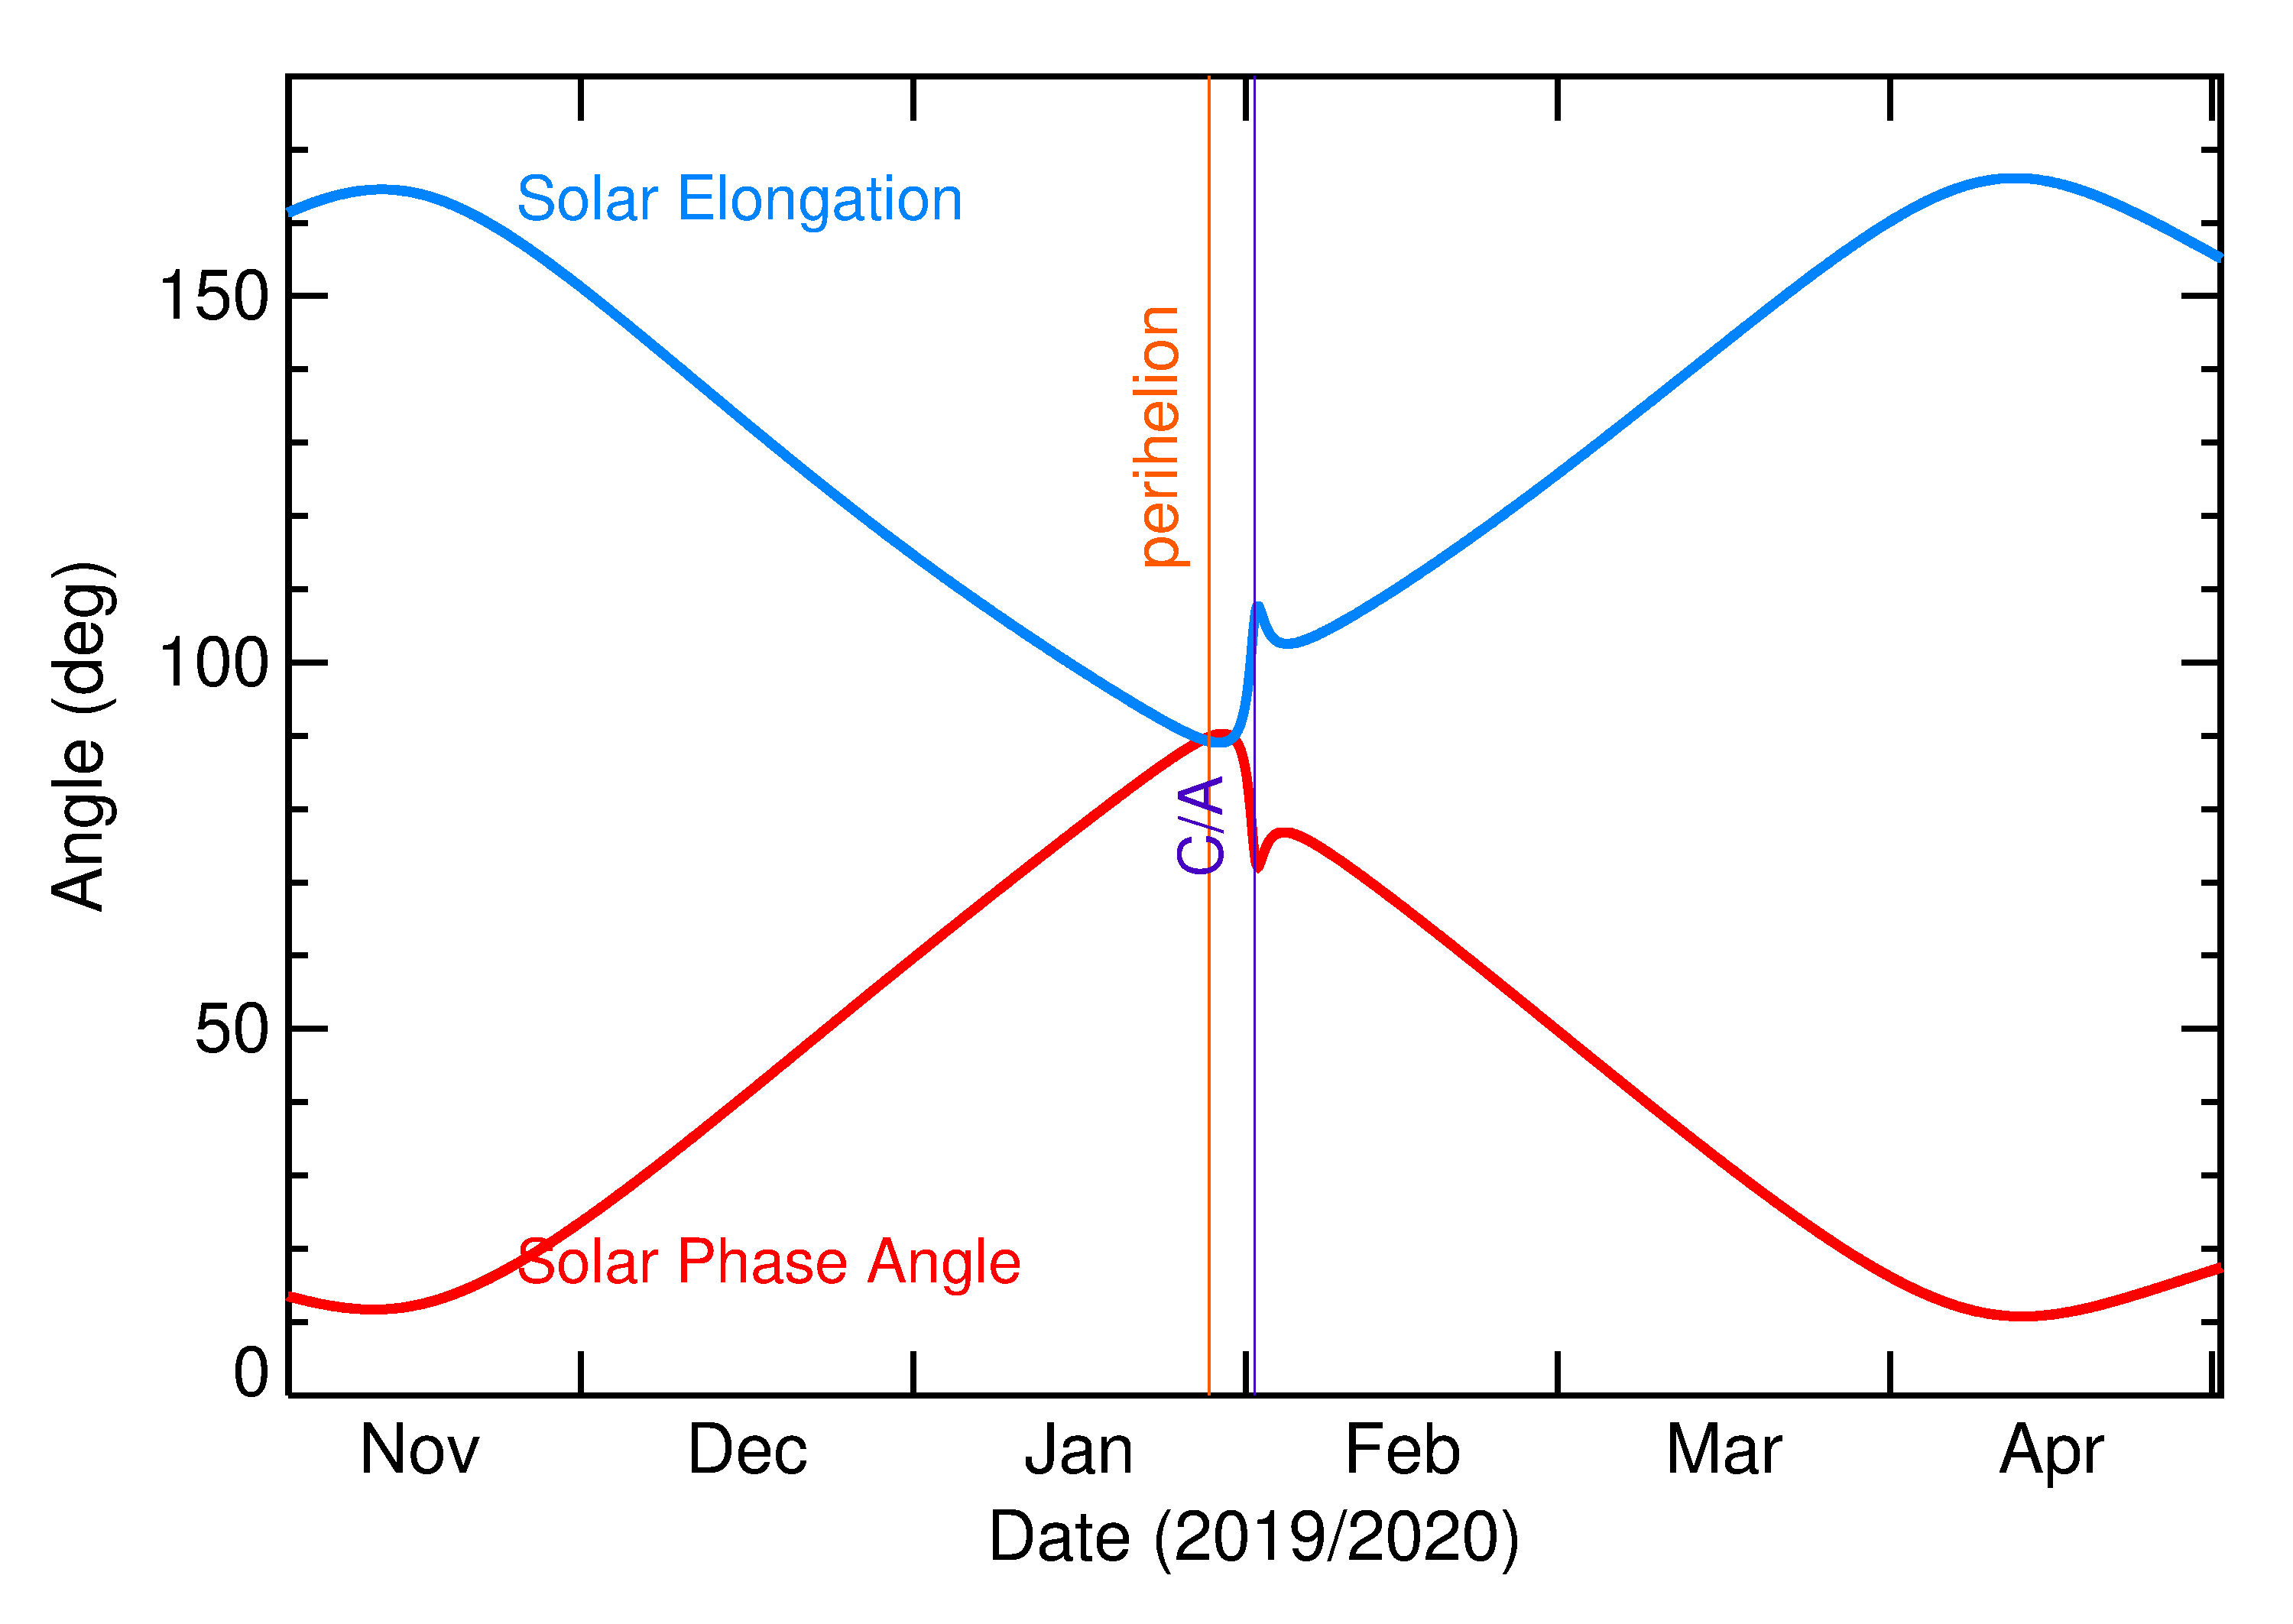 Solar Elongation and Solar Phase Angle of 2020 CJ in the months around closest approach